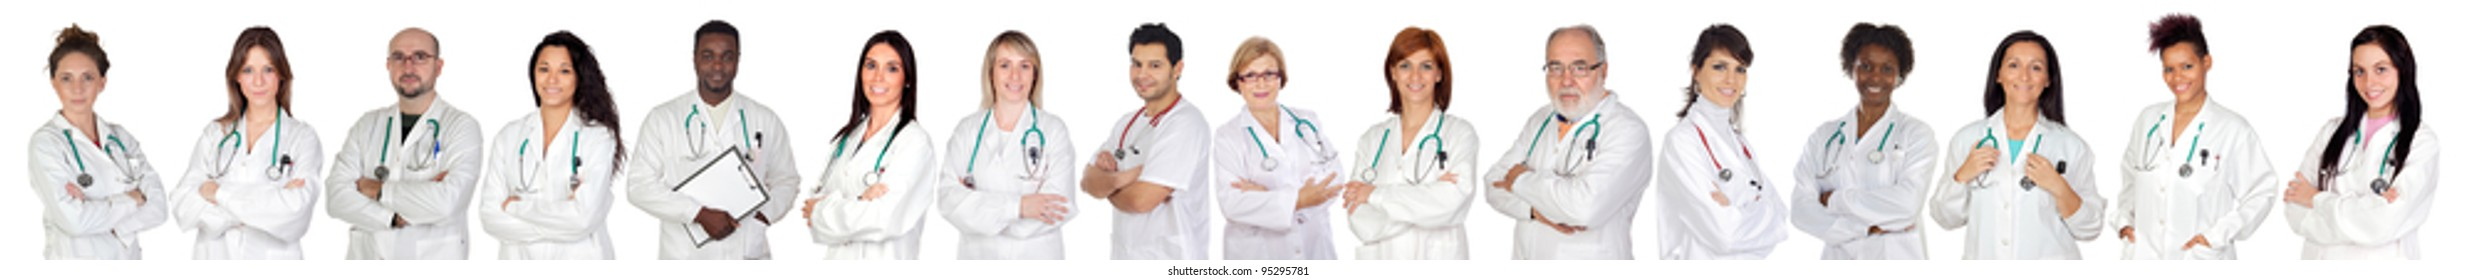 Medical team with white uniform on a over white background